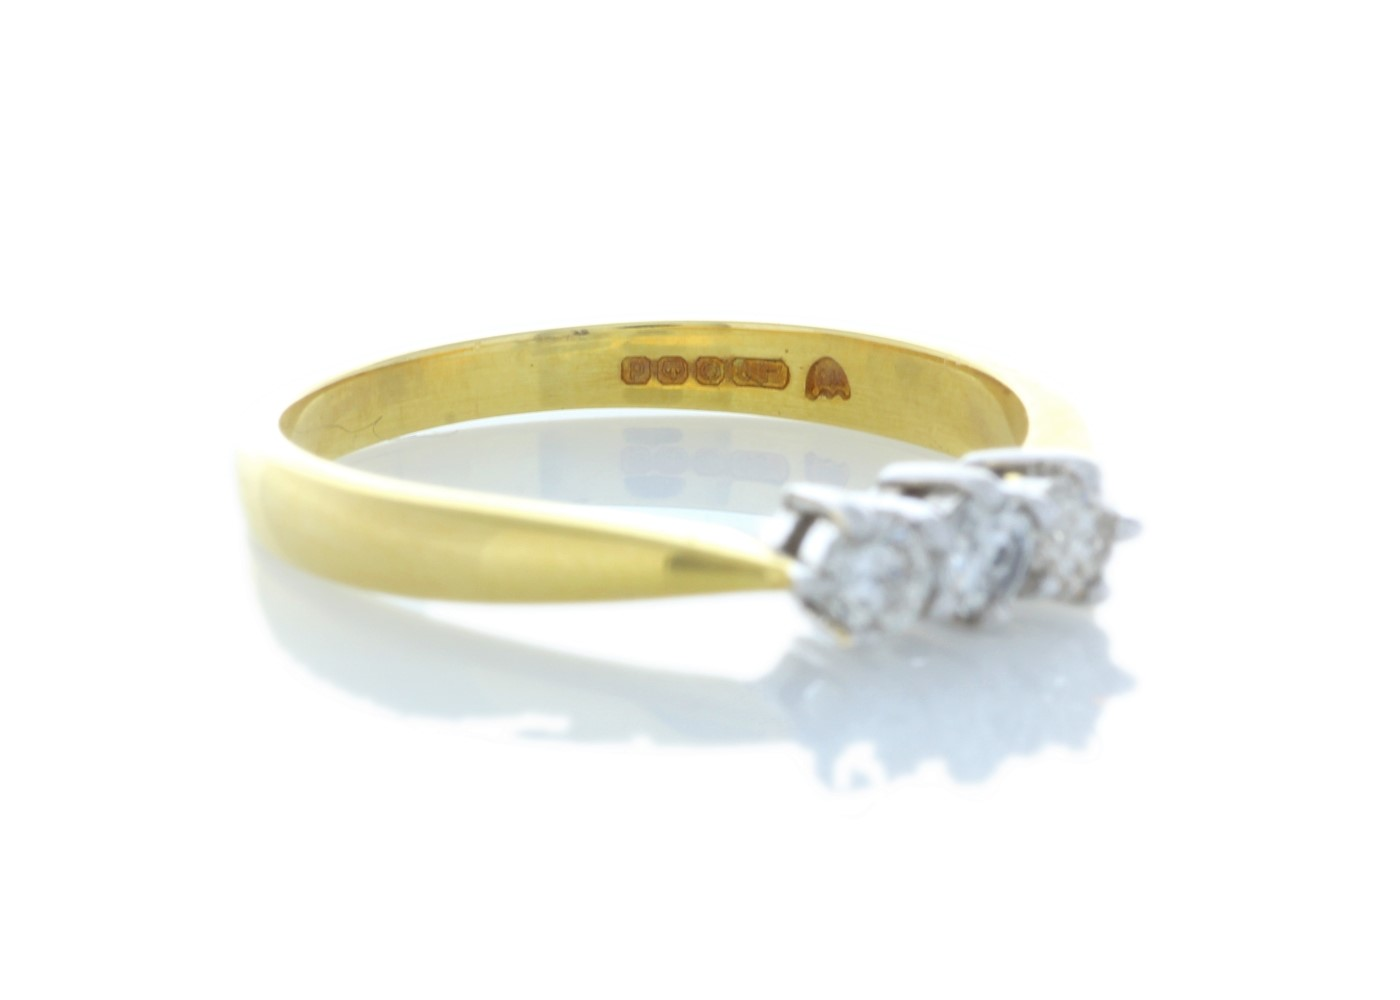 9ct Yellow Gold Three Stone Claw Set Diamond Ring 0.25 Carats - Image 4 of 4